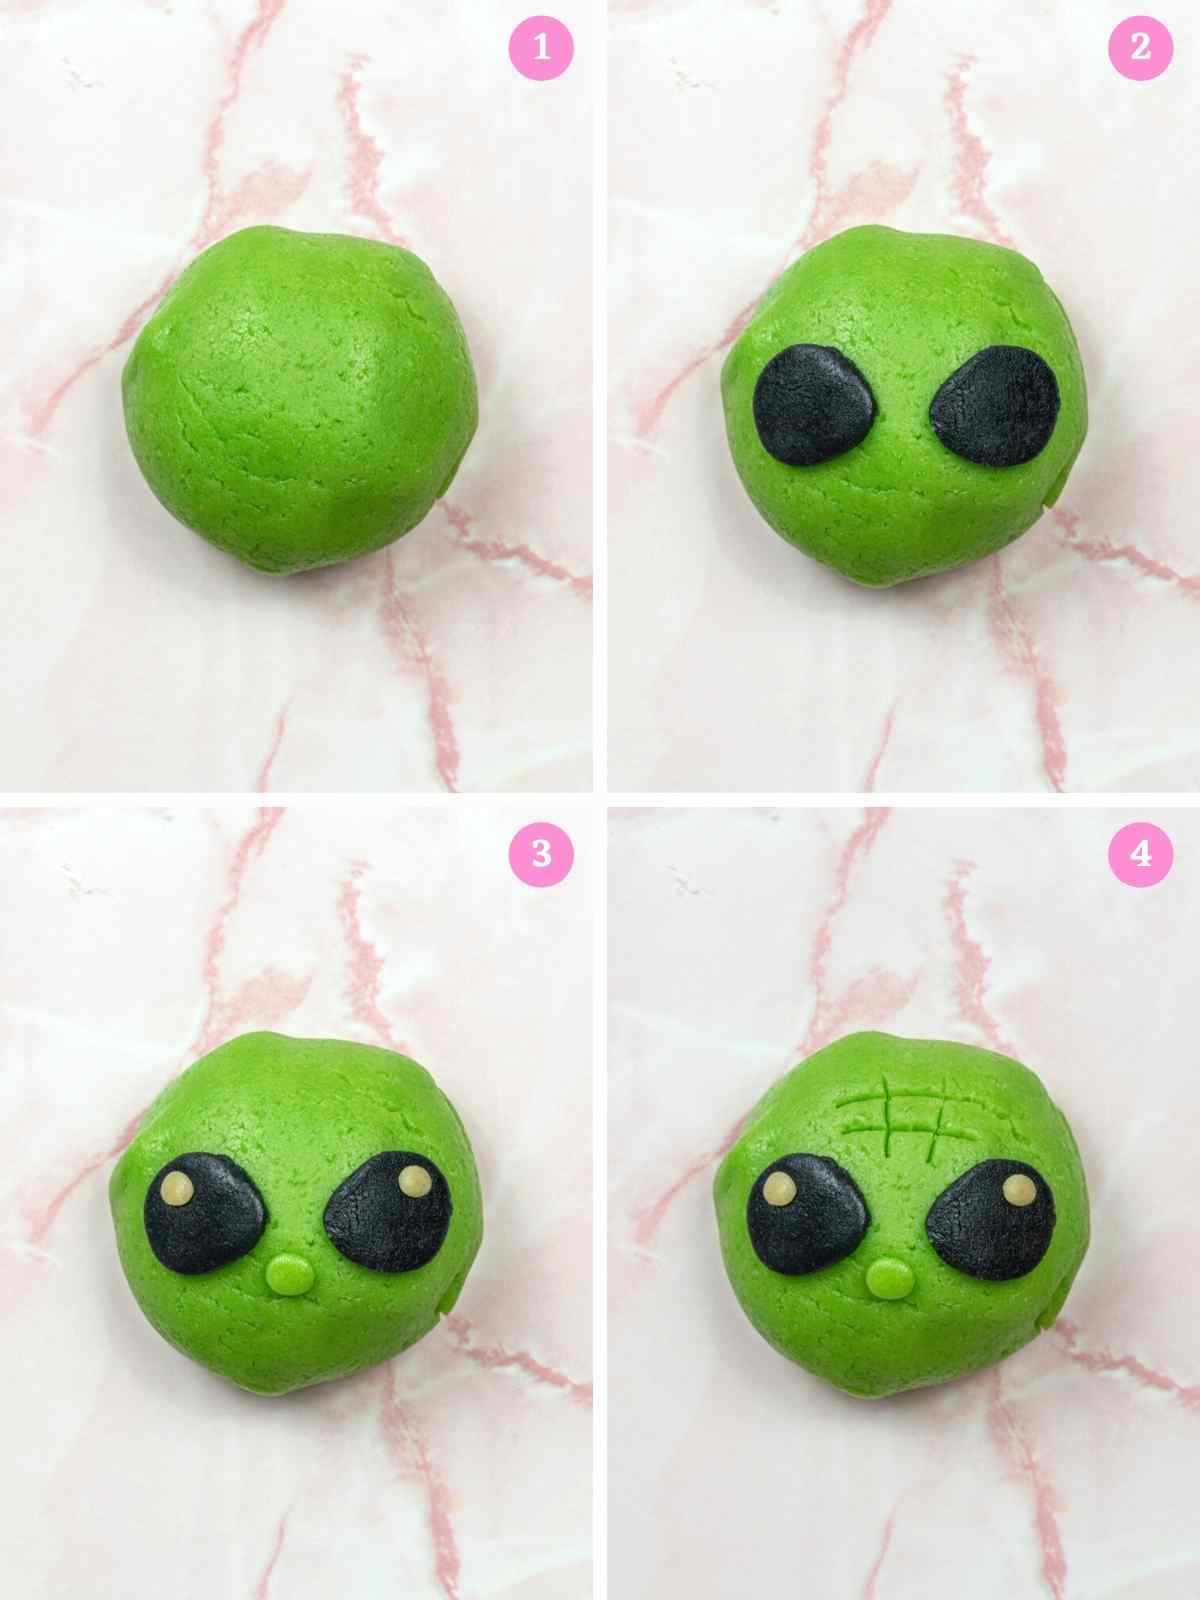 Collage of 4 images showing how to assemble Baby Yoda melon bread